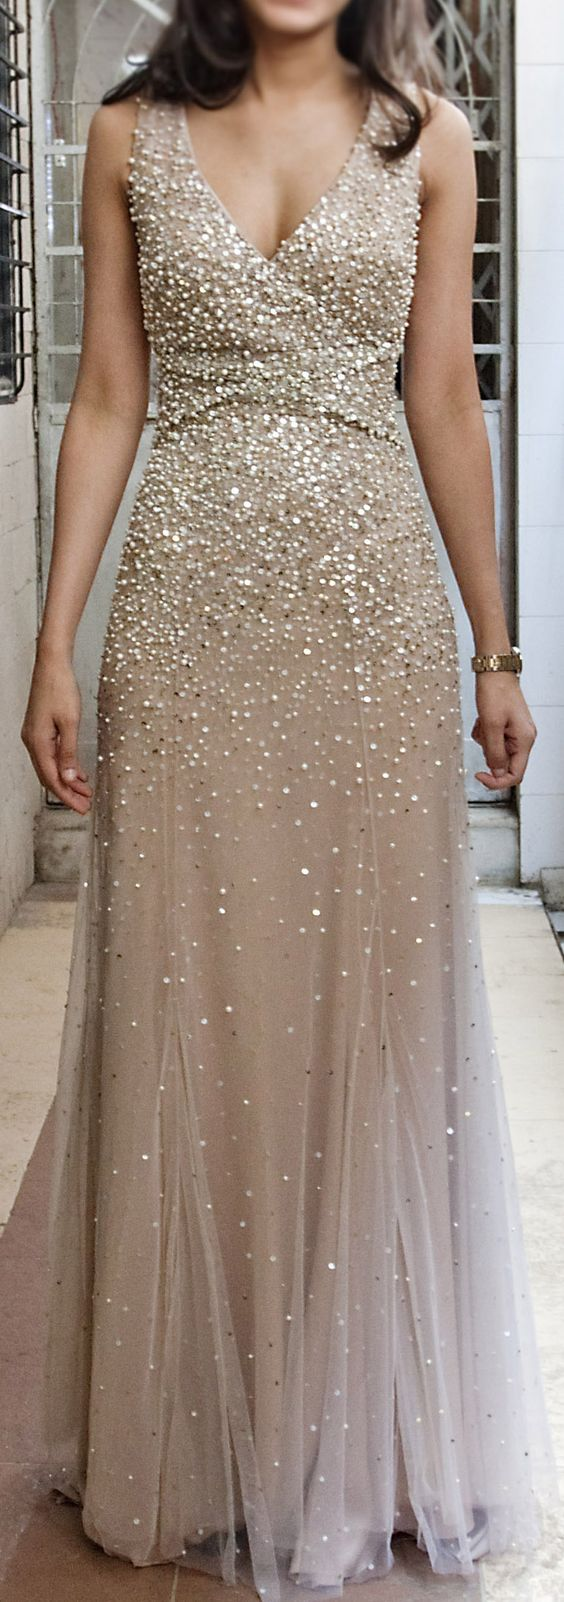 sparkledust by Sharnita Nandwana I am obsessed with the idea of having sequin bridesmaids dresses, it's different and exciting! jαɢlαdy